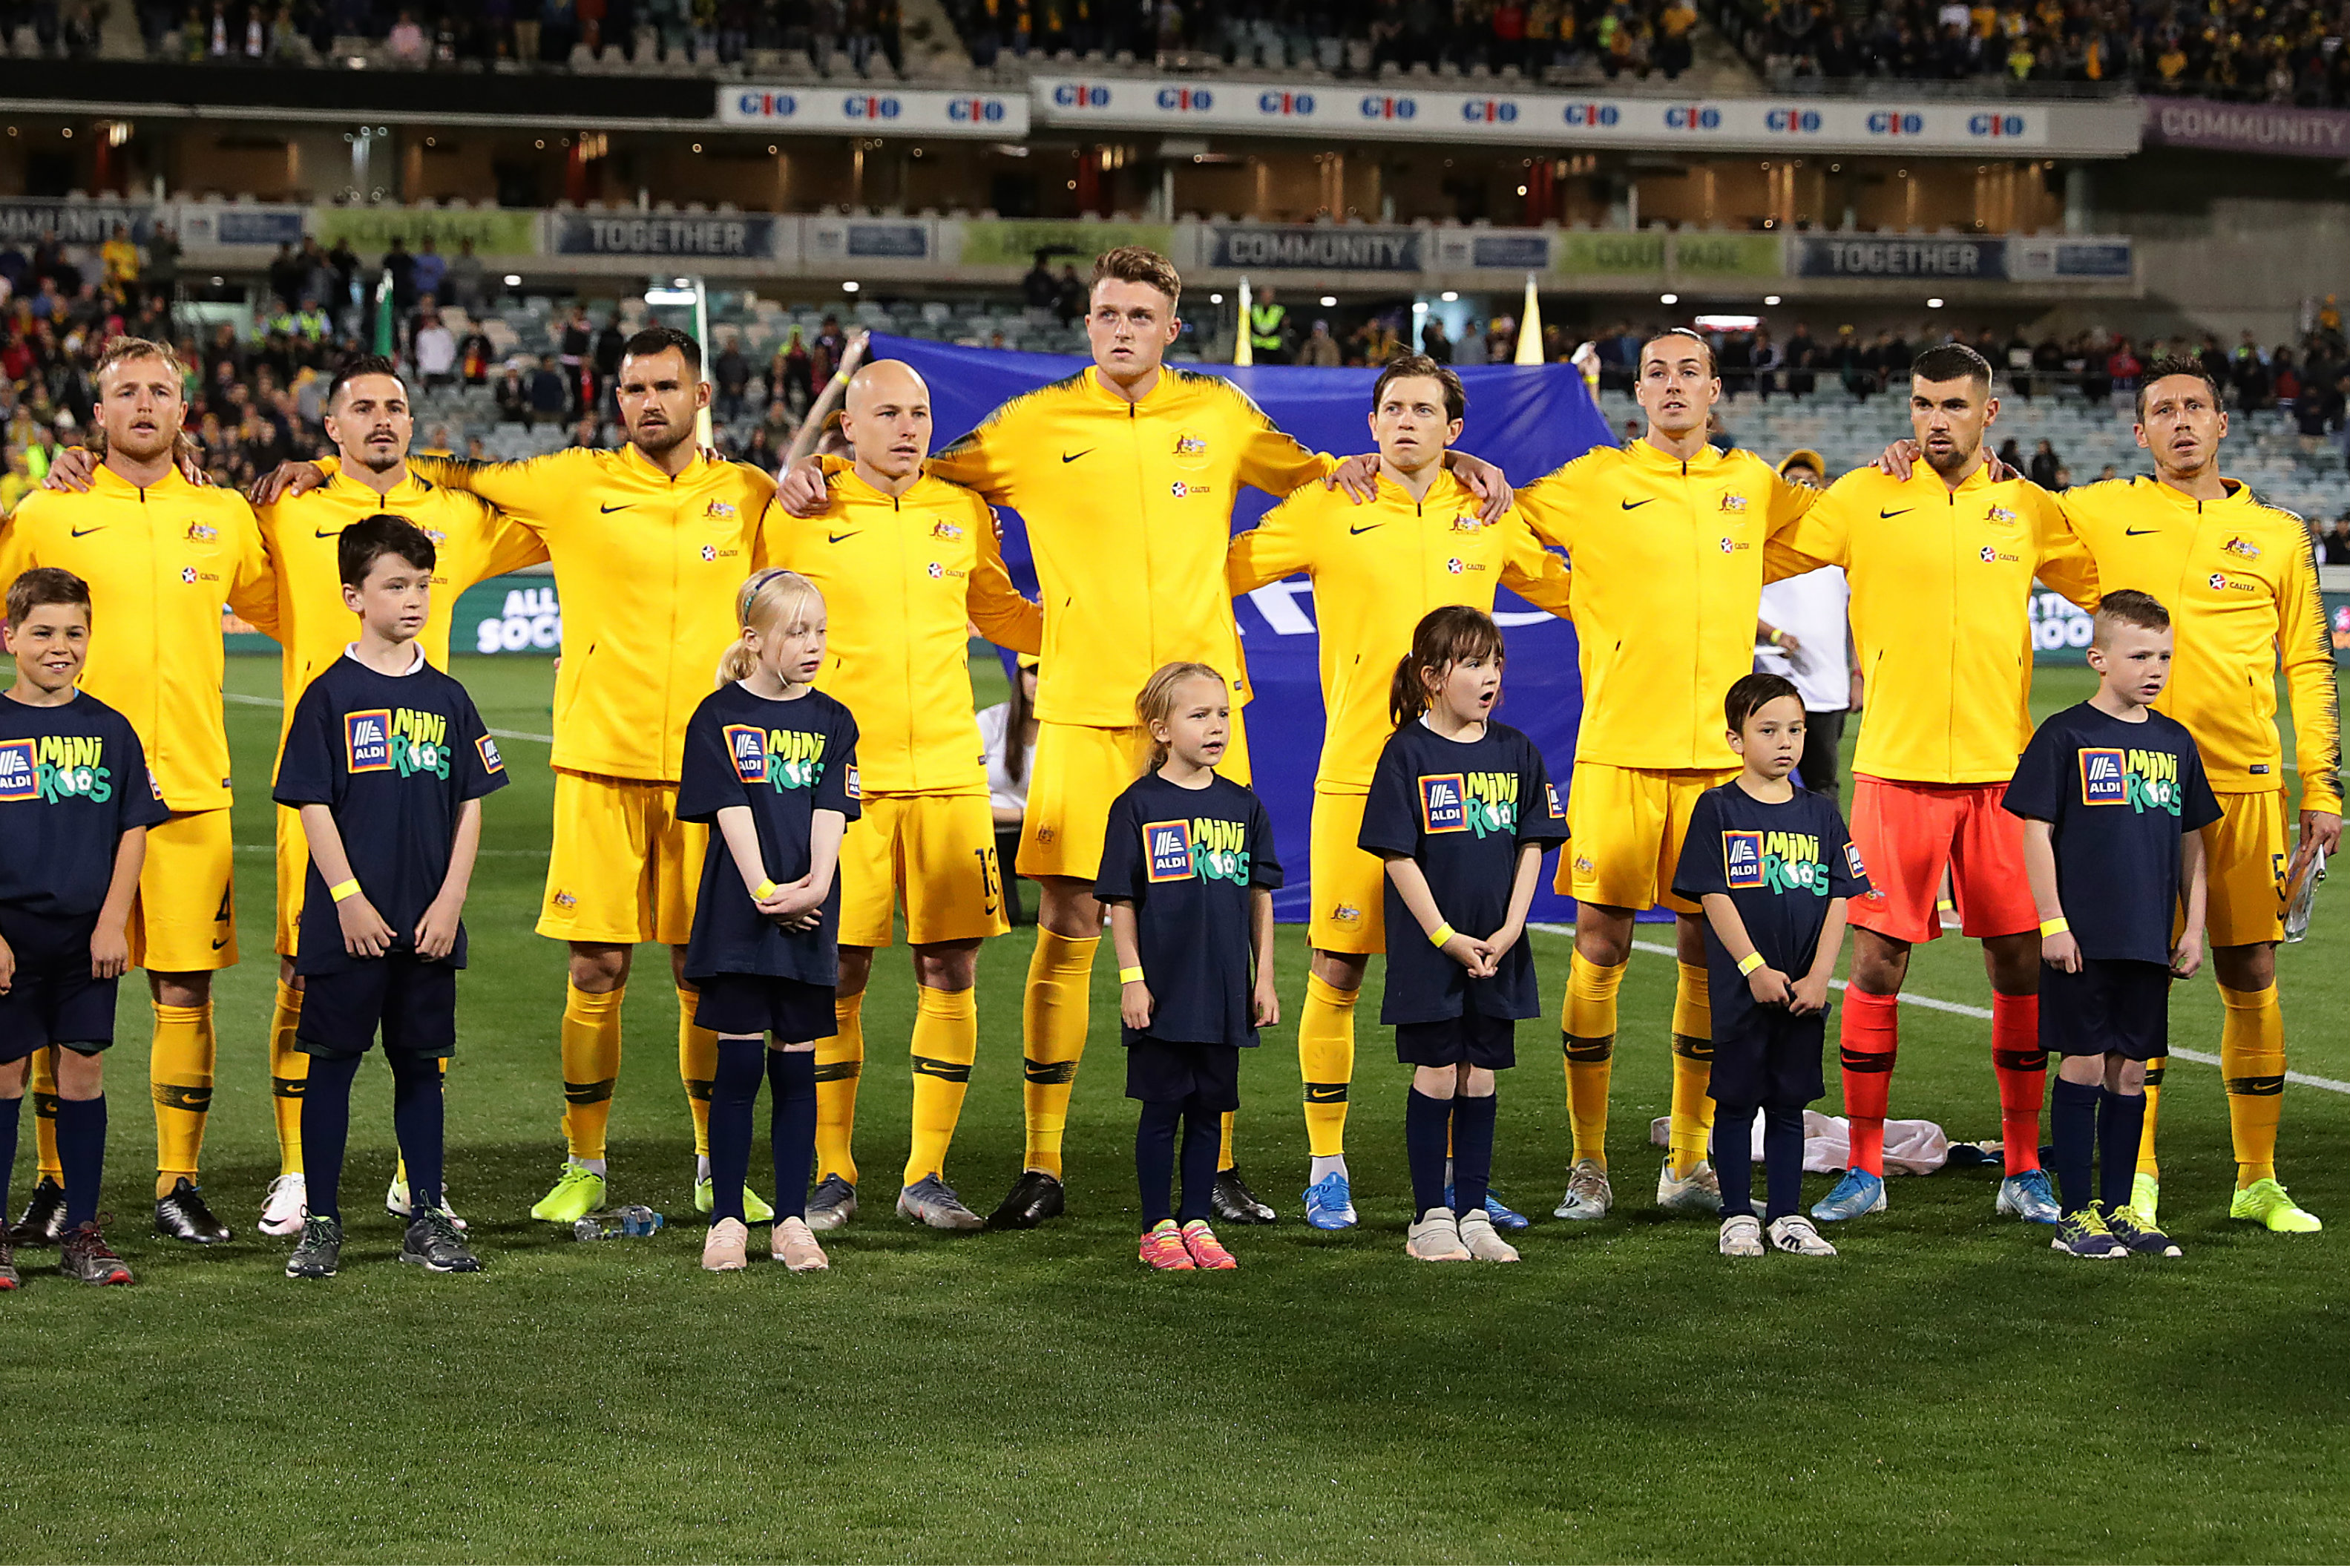 How to watch Caltex Socceroos v Chinese Taipei live and free